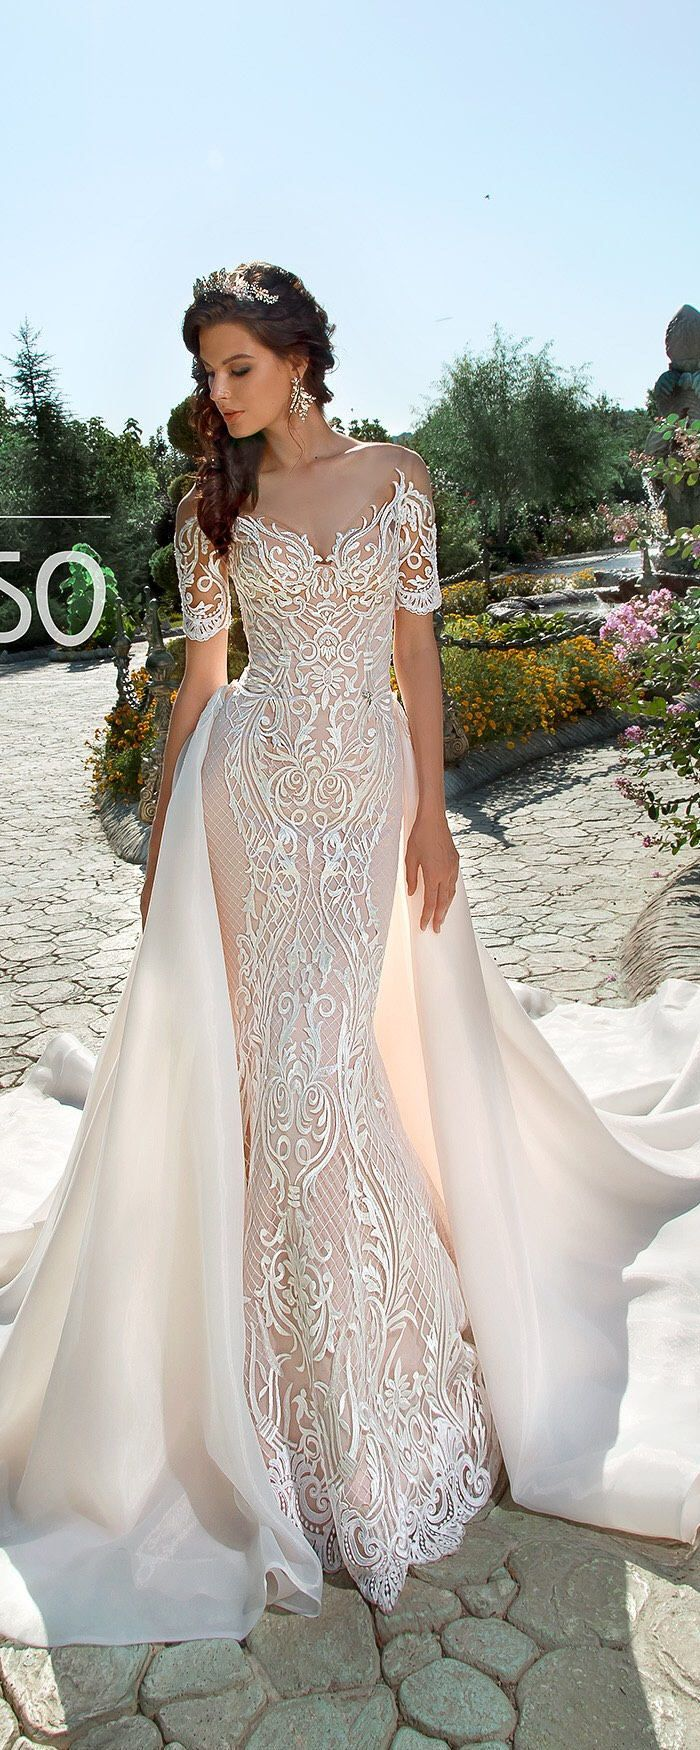 4166dc9e0c8 Off Shoulder Long Sleeve Wedding Dress Sexy Mermaid Backless Lace Bridal  Gowns TERCIA  laceweddingdresses